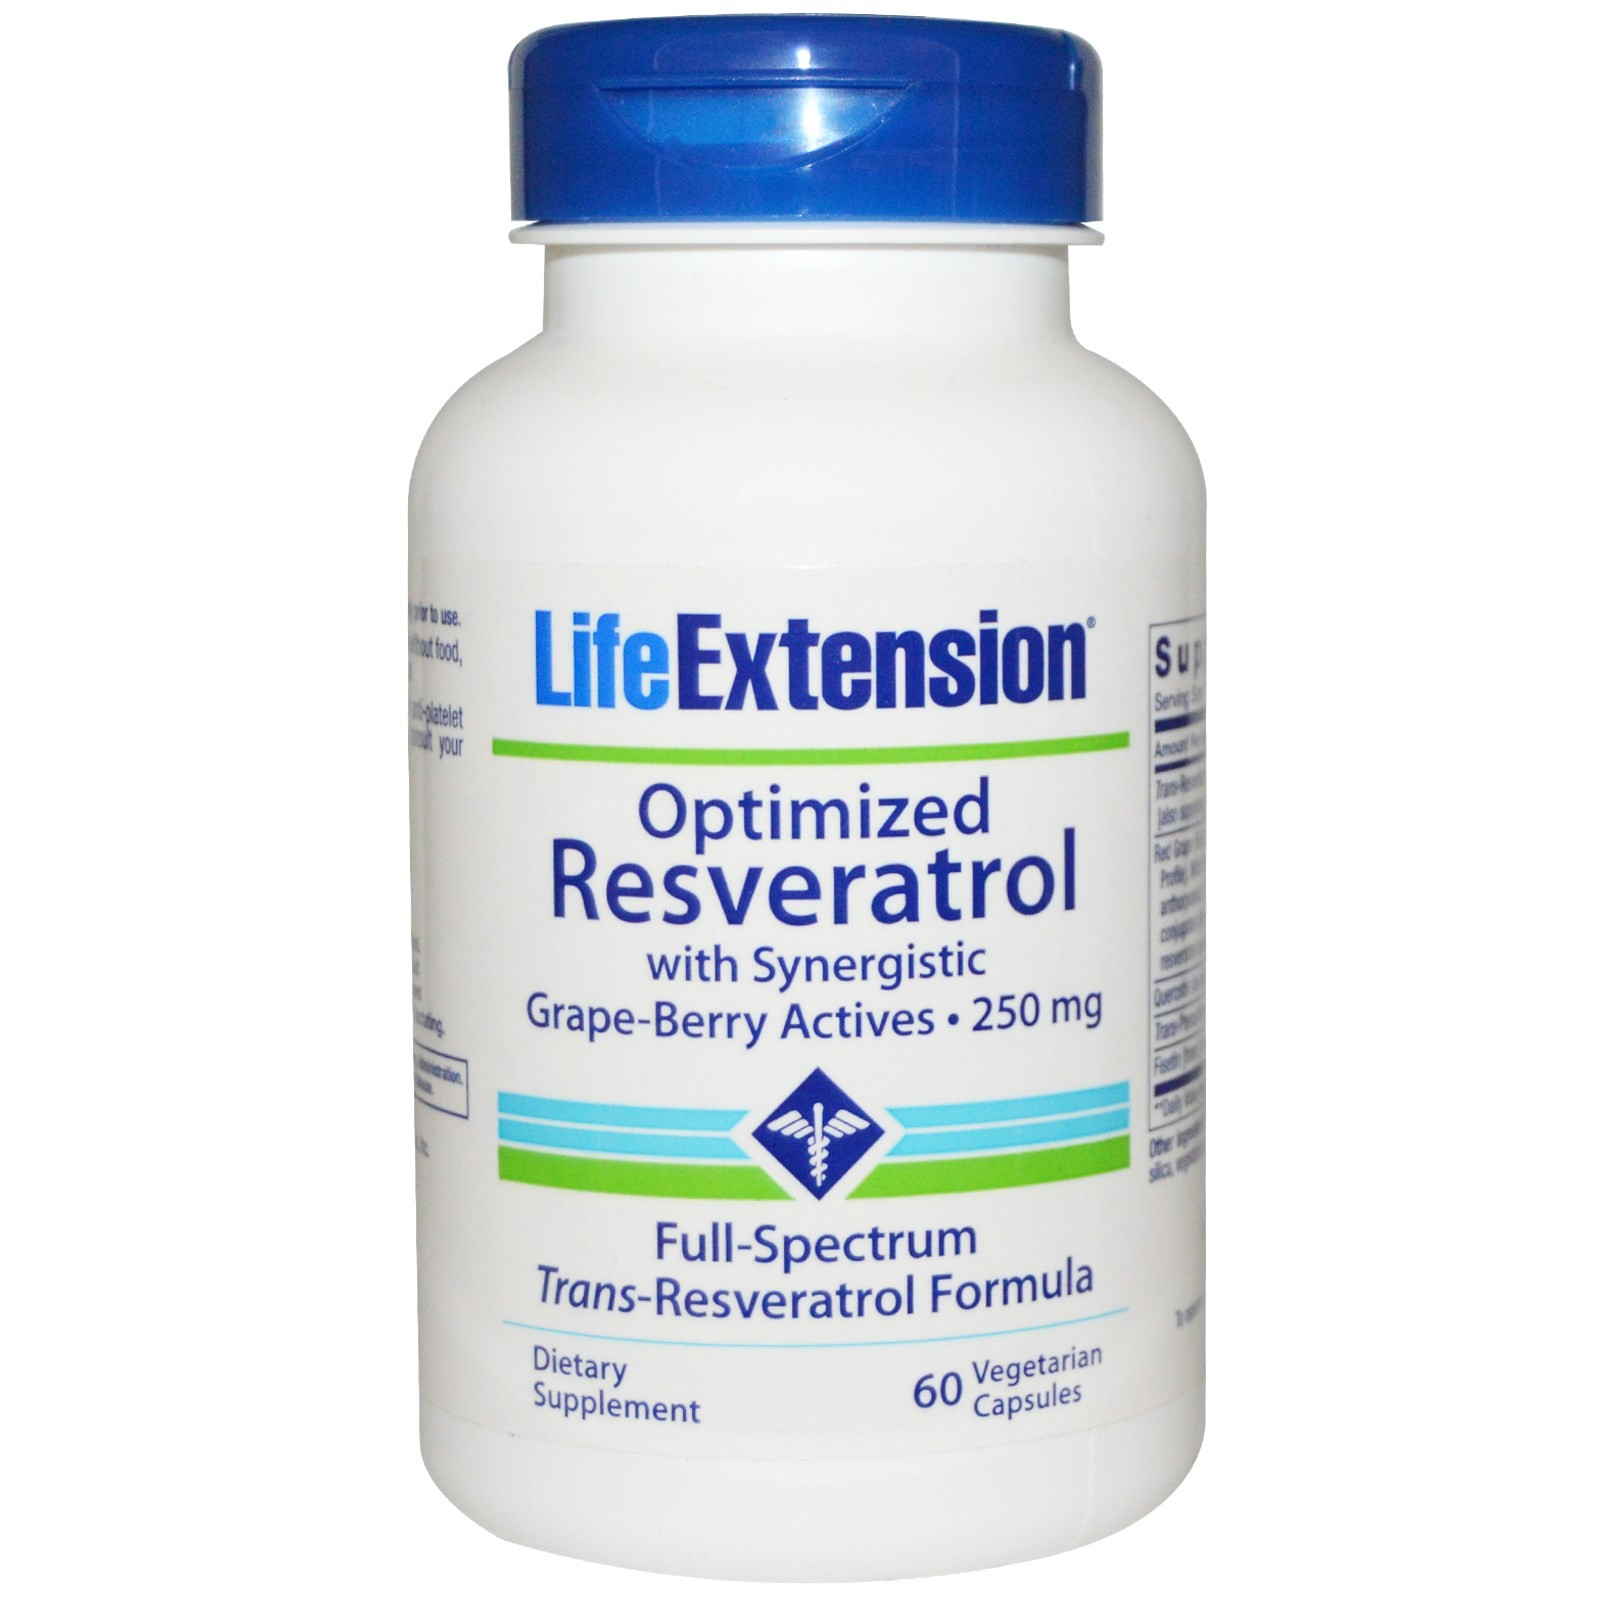 Optimized Resveratrol - LIFE EXTENSION